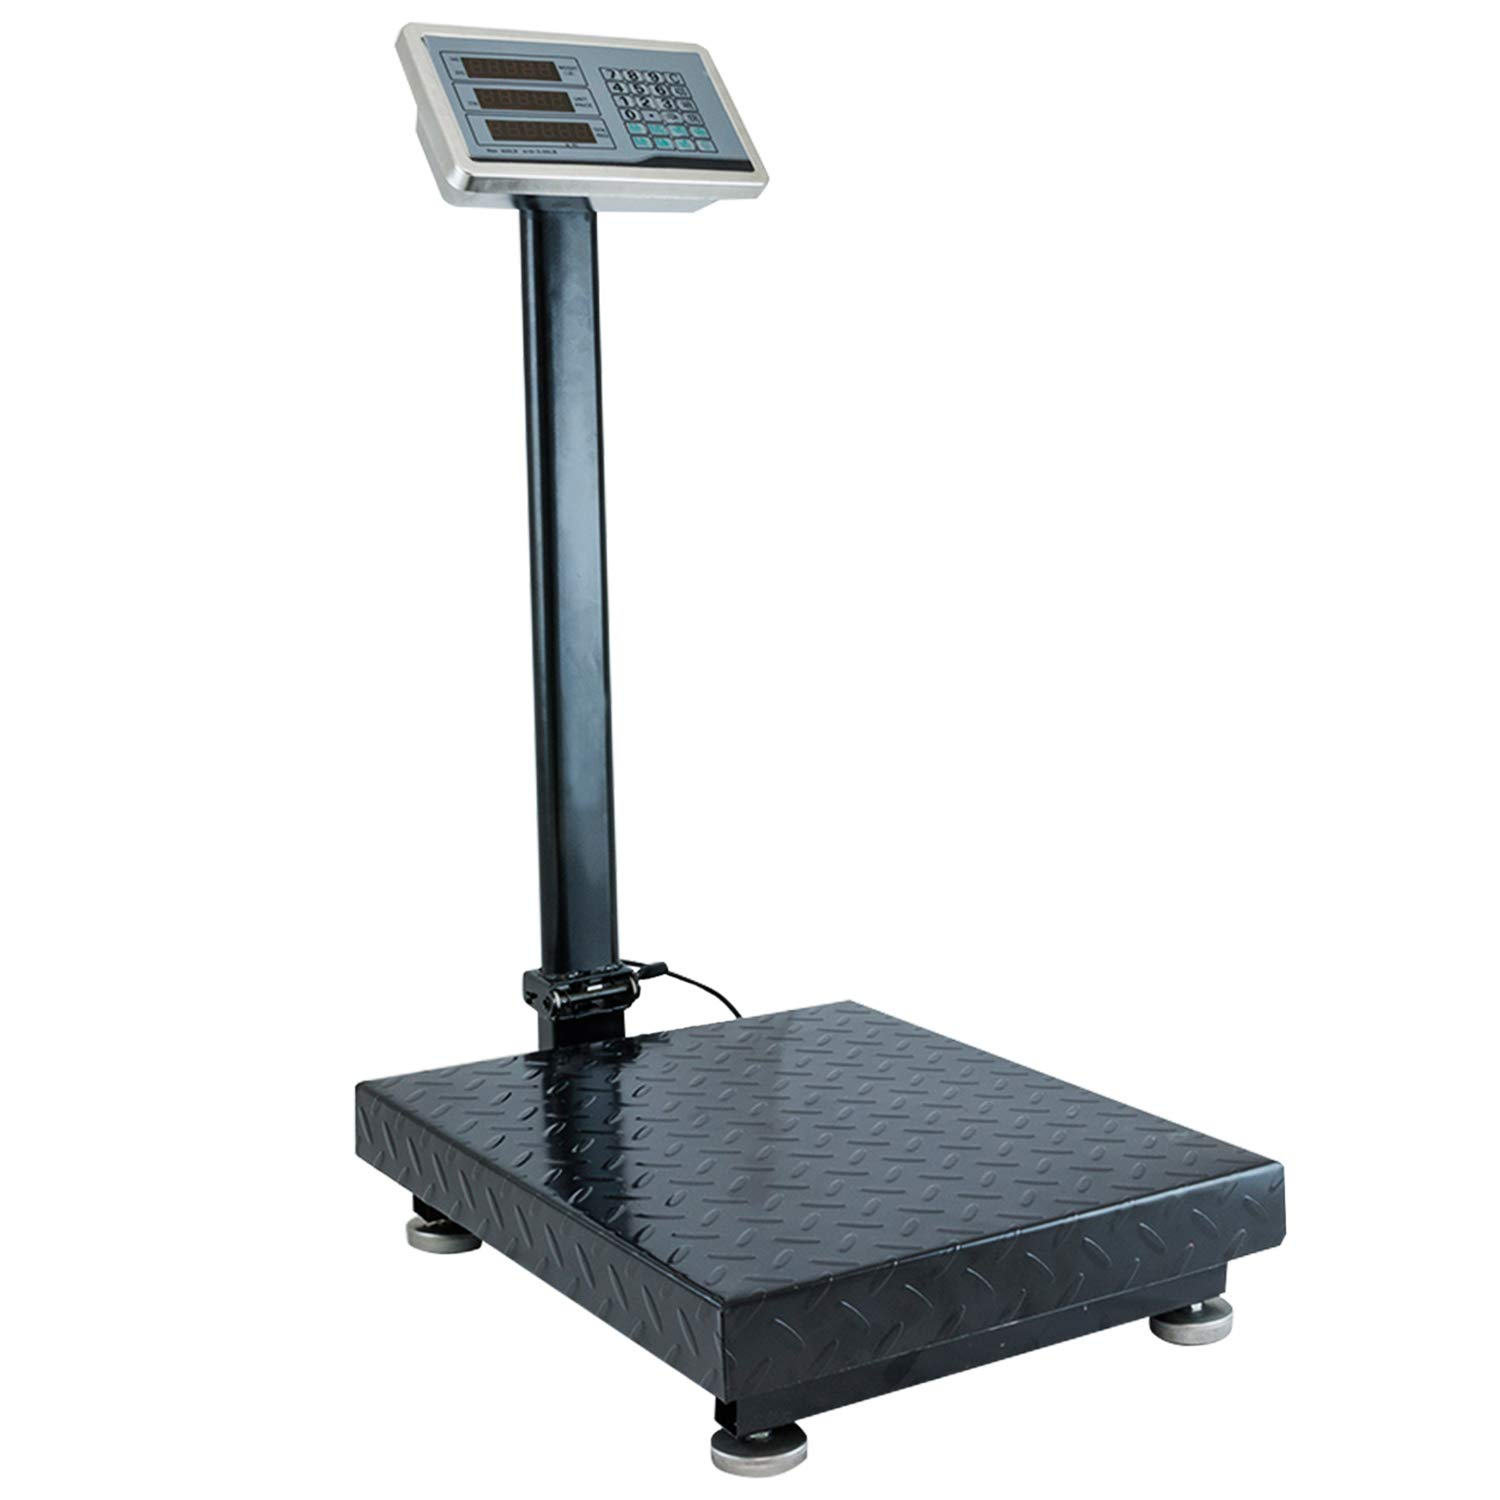 "Houseables Industrial Platform Scale 600 LB x .05, 19.5"" x 15.75"", Digital, Bench, Large for Luggage, Shipping, Package Computing, Postal"